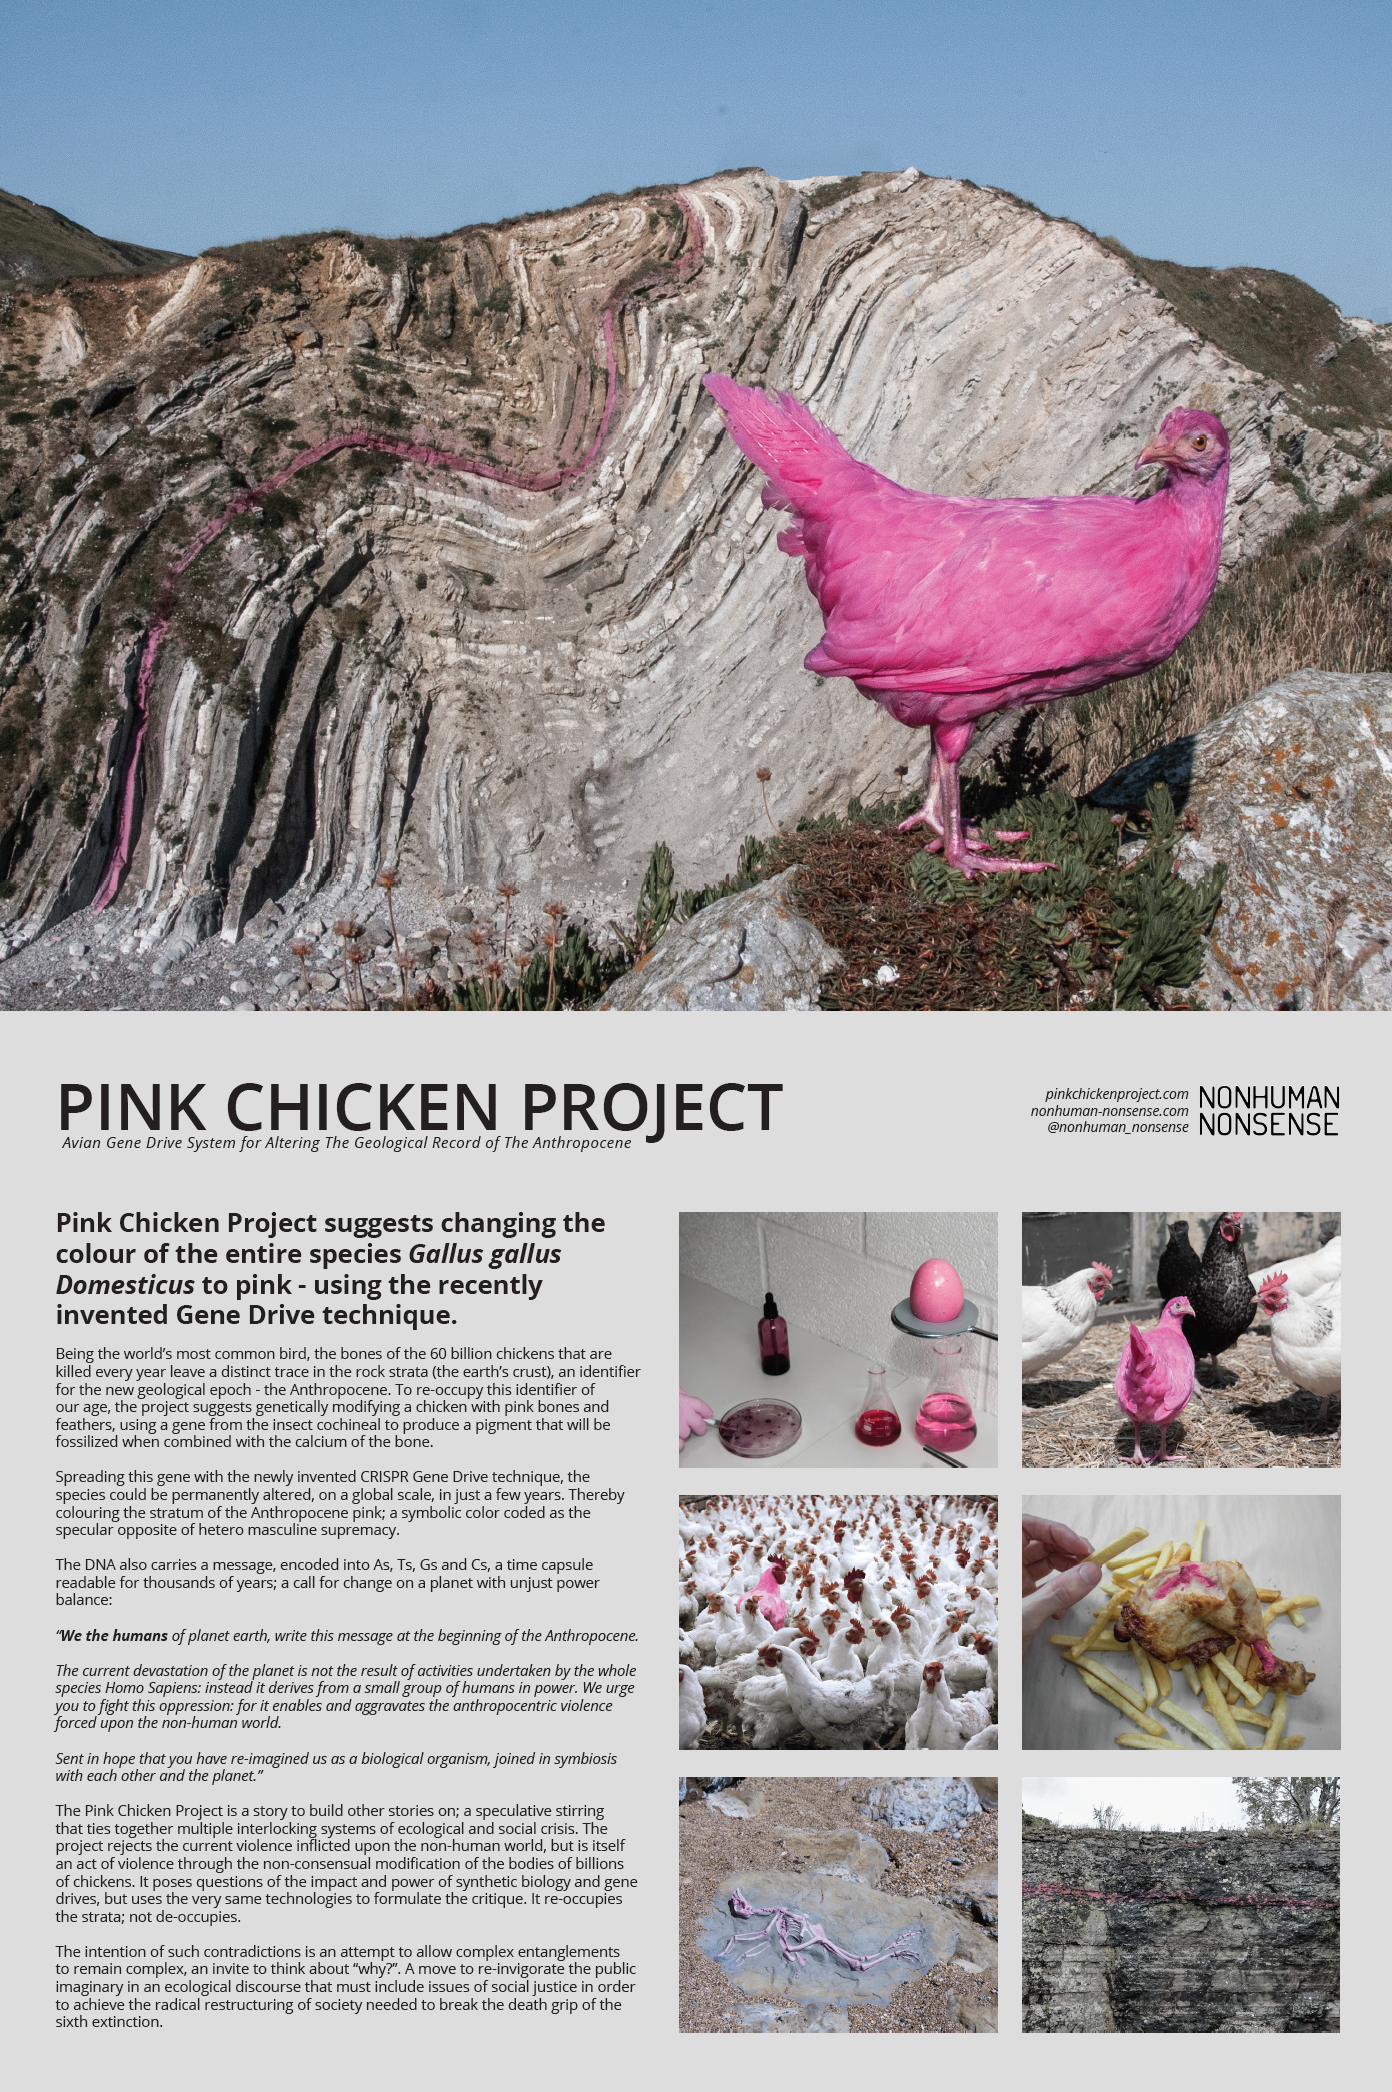 """Pink Chicken Project suggests using a """"Gene Drive"""" to change the colour of the entire species Gallus gallus Domesticus to pink. Being the world's most common bird, the bones of the 60 billion chickens that are killed every year leave a distinct trace in the rock strata (the earth's crust), a marker for the new geological age: the Anthropocene. To re-occupy this identifier of our age, the project suggests genetically modifying a chicken to create pink bones and feathers, thereby modifying the future fossil record, colouring the geological trace of humankind pink!"""